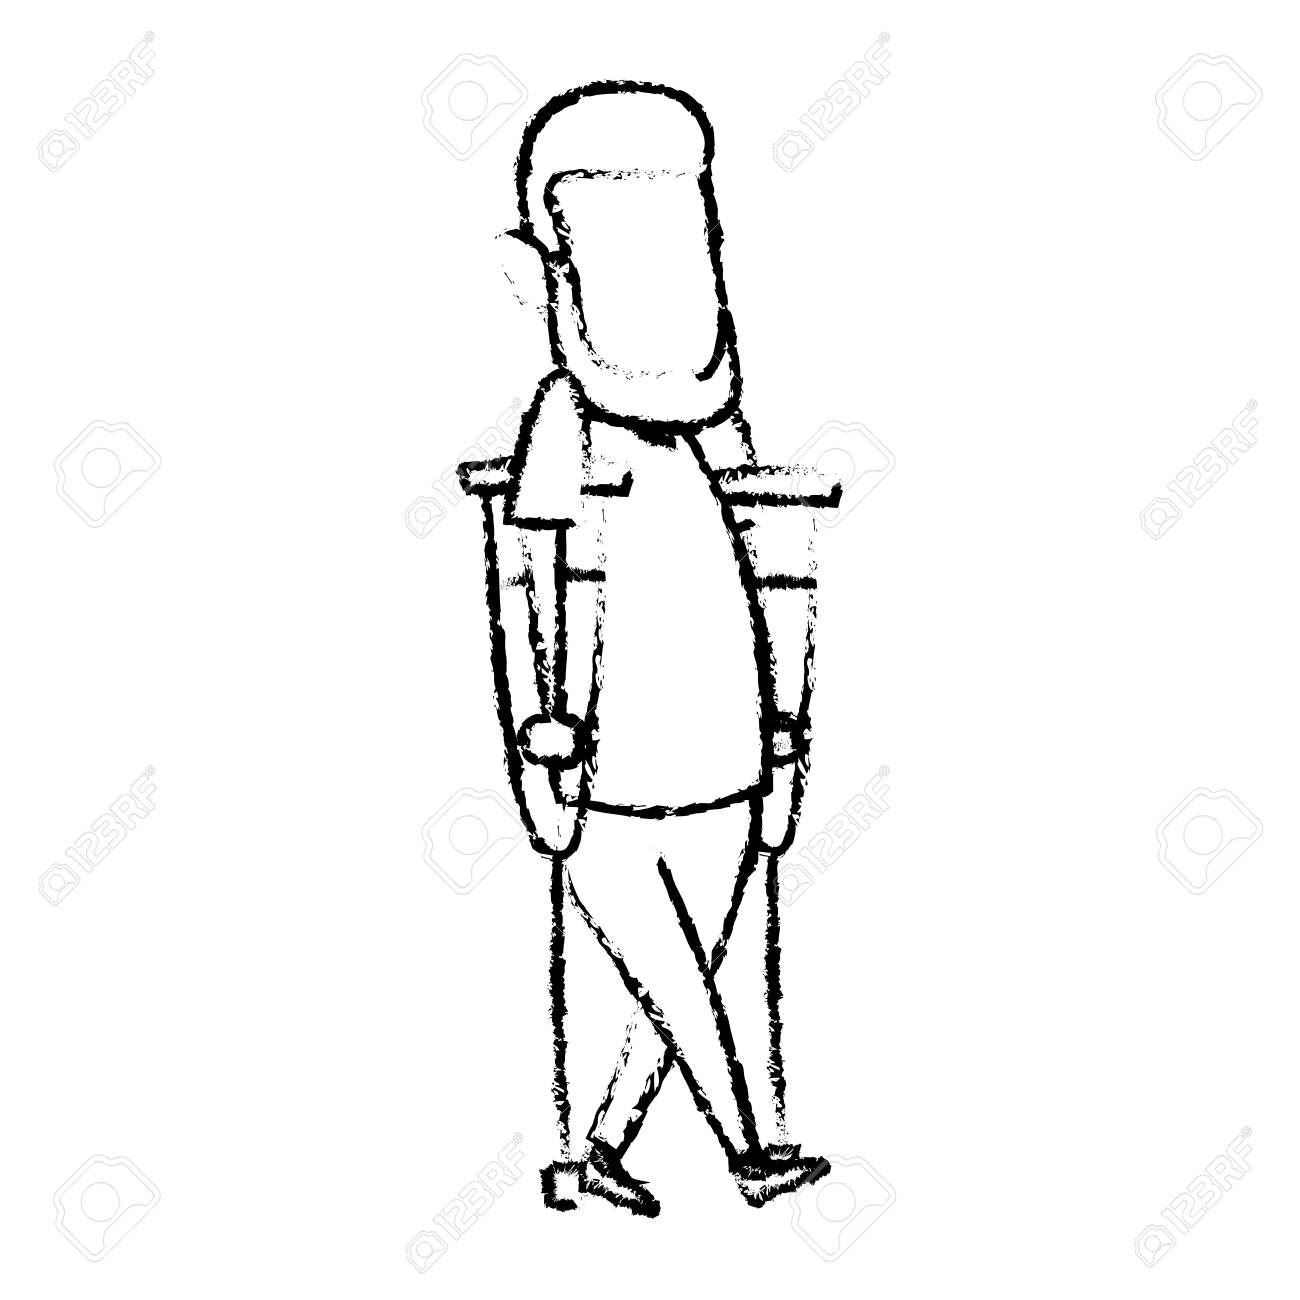 1300x1300 Cartoon Man Disability Walking On Crutches Vector Illustration